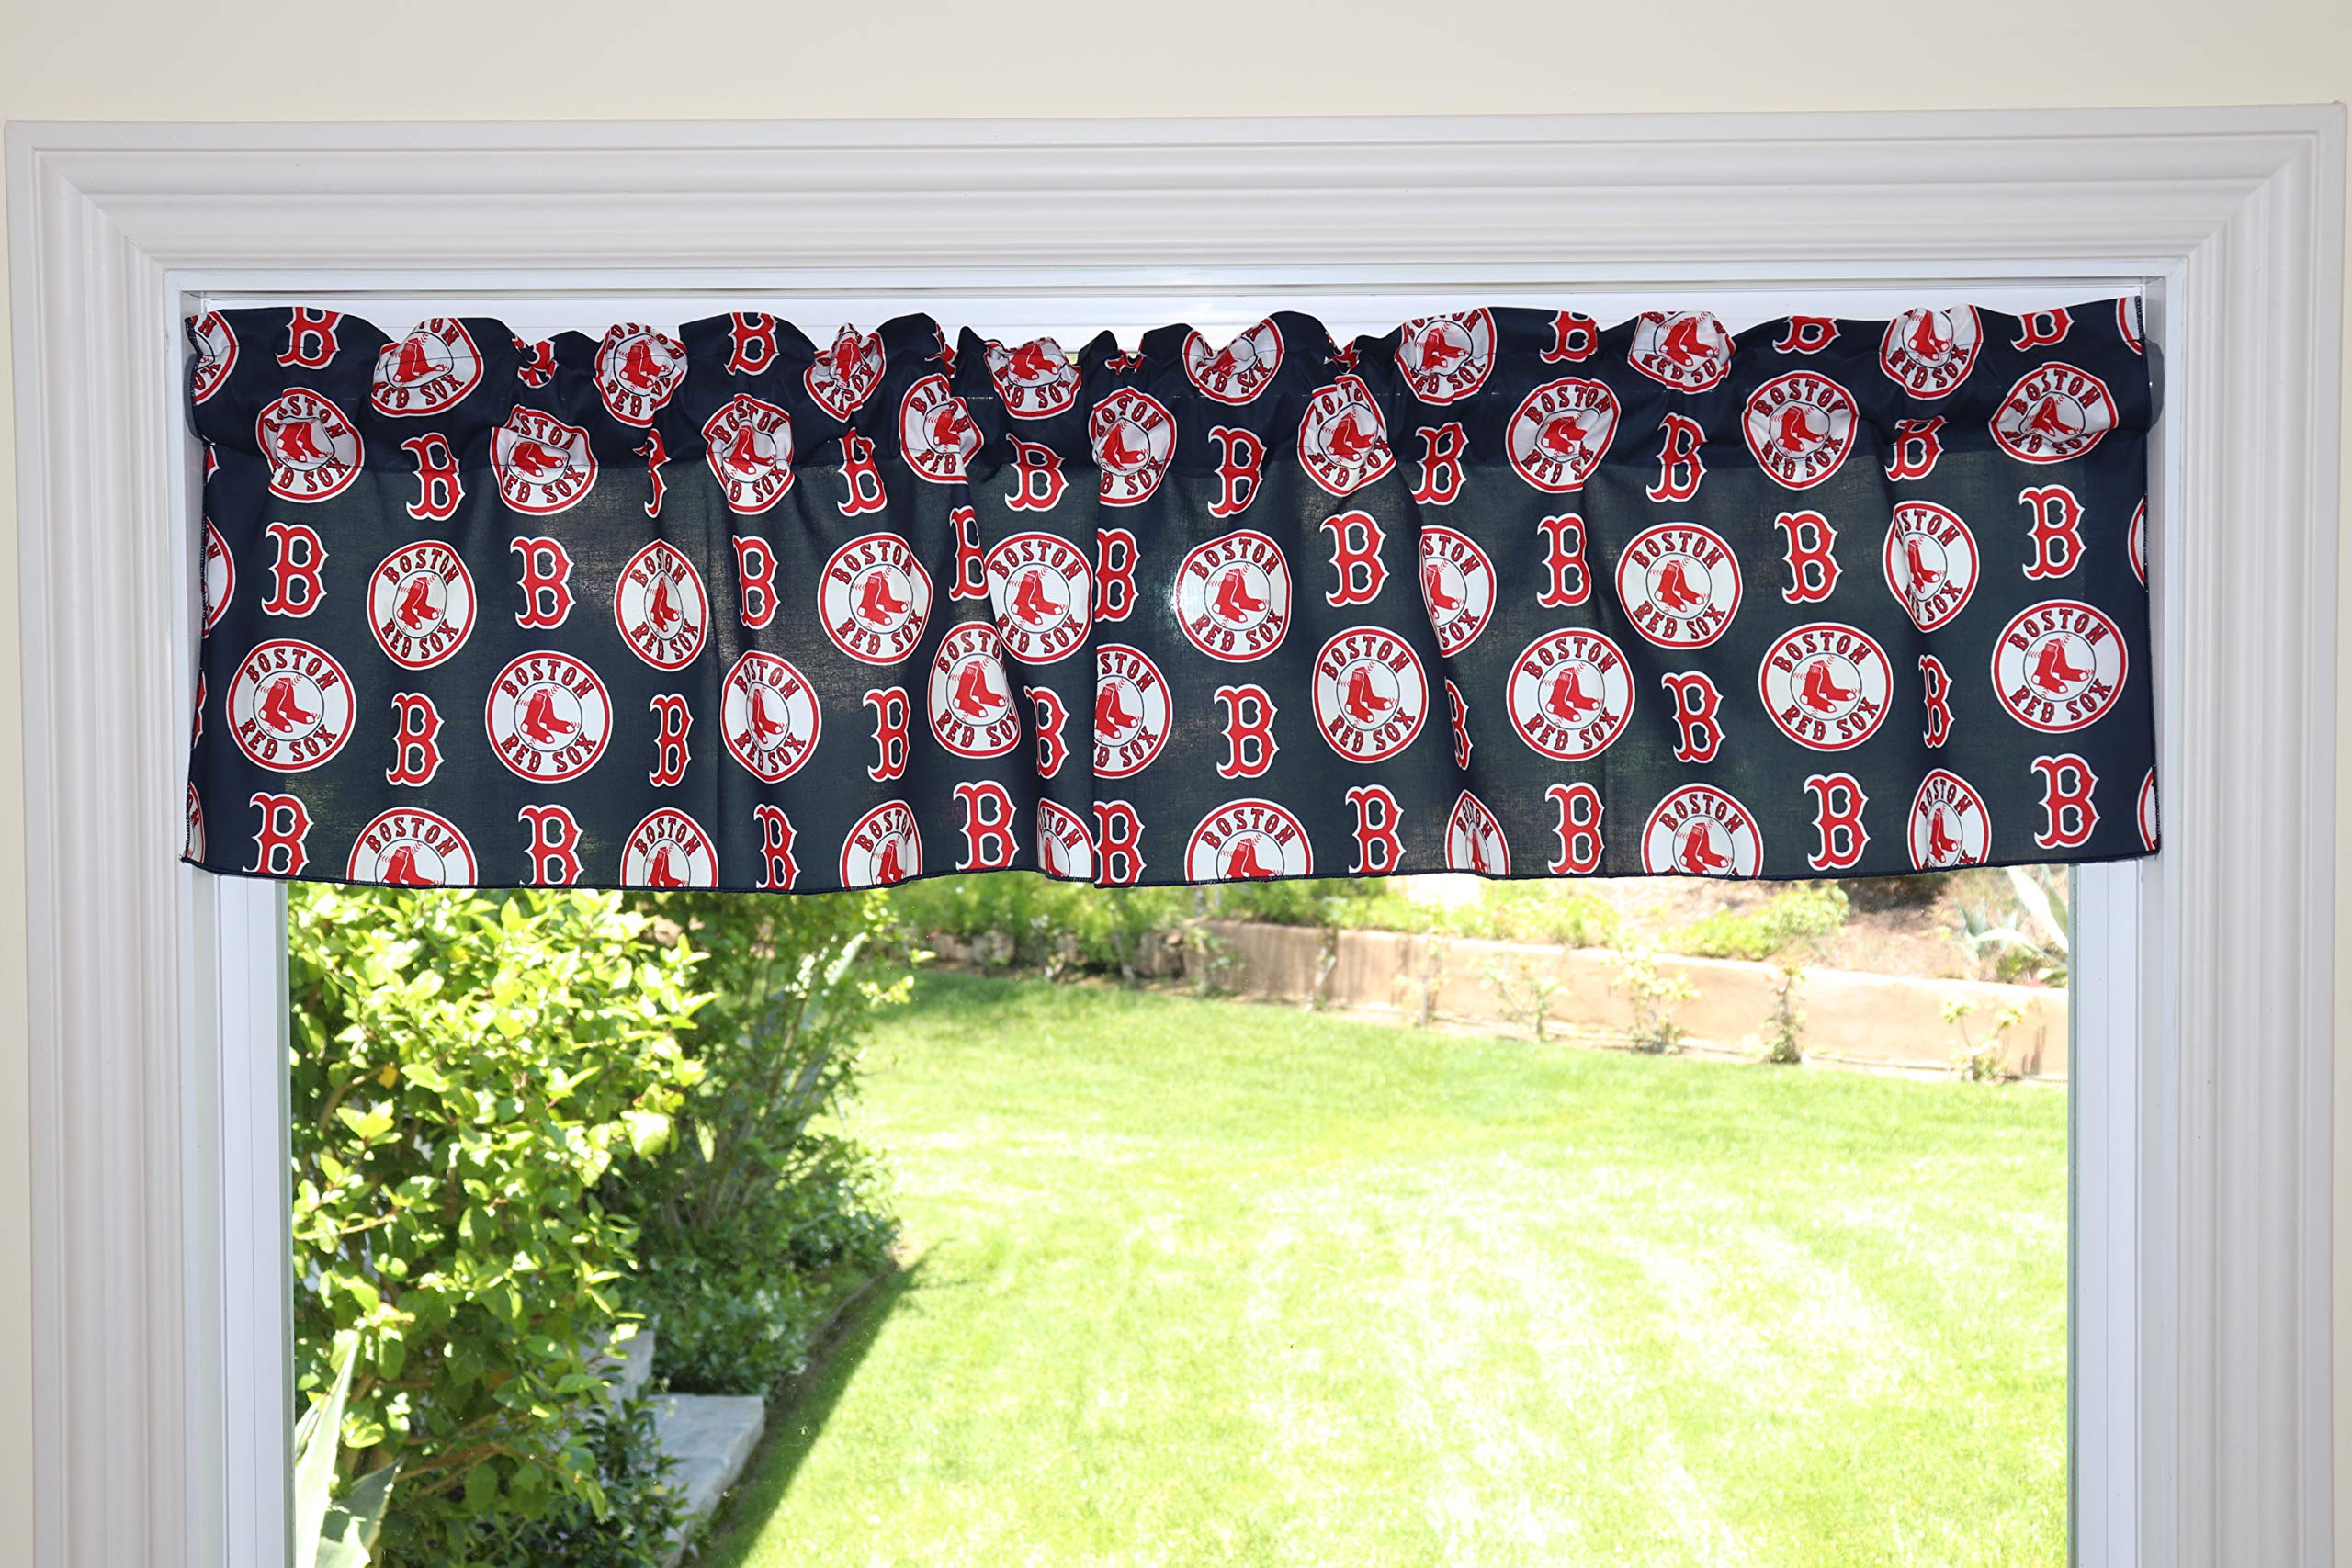 lovemyfabric Baseball Cotton Window Valance 100% Cotton Print MLB Sports Team Boston Red Sox Events Kitchen Dining Room Bedroom Window Decor (58'' Wide) (24'' Tall, Red Sox Navy) by lovemyfabric